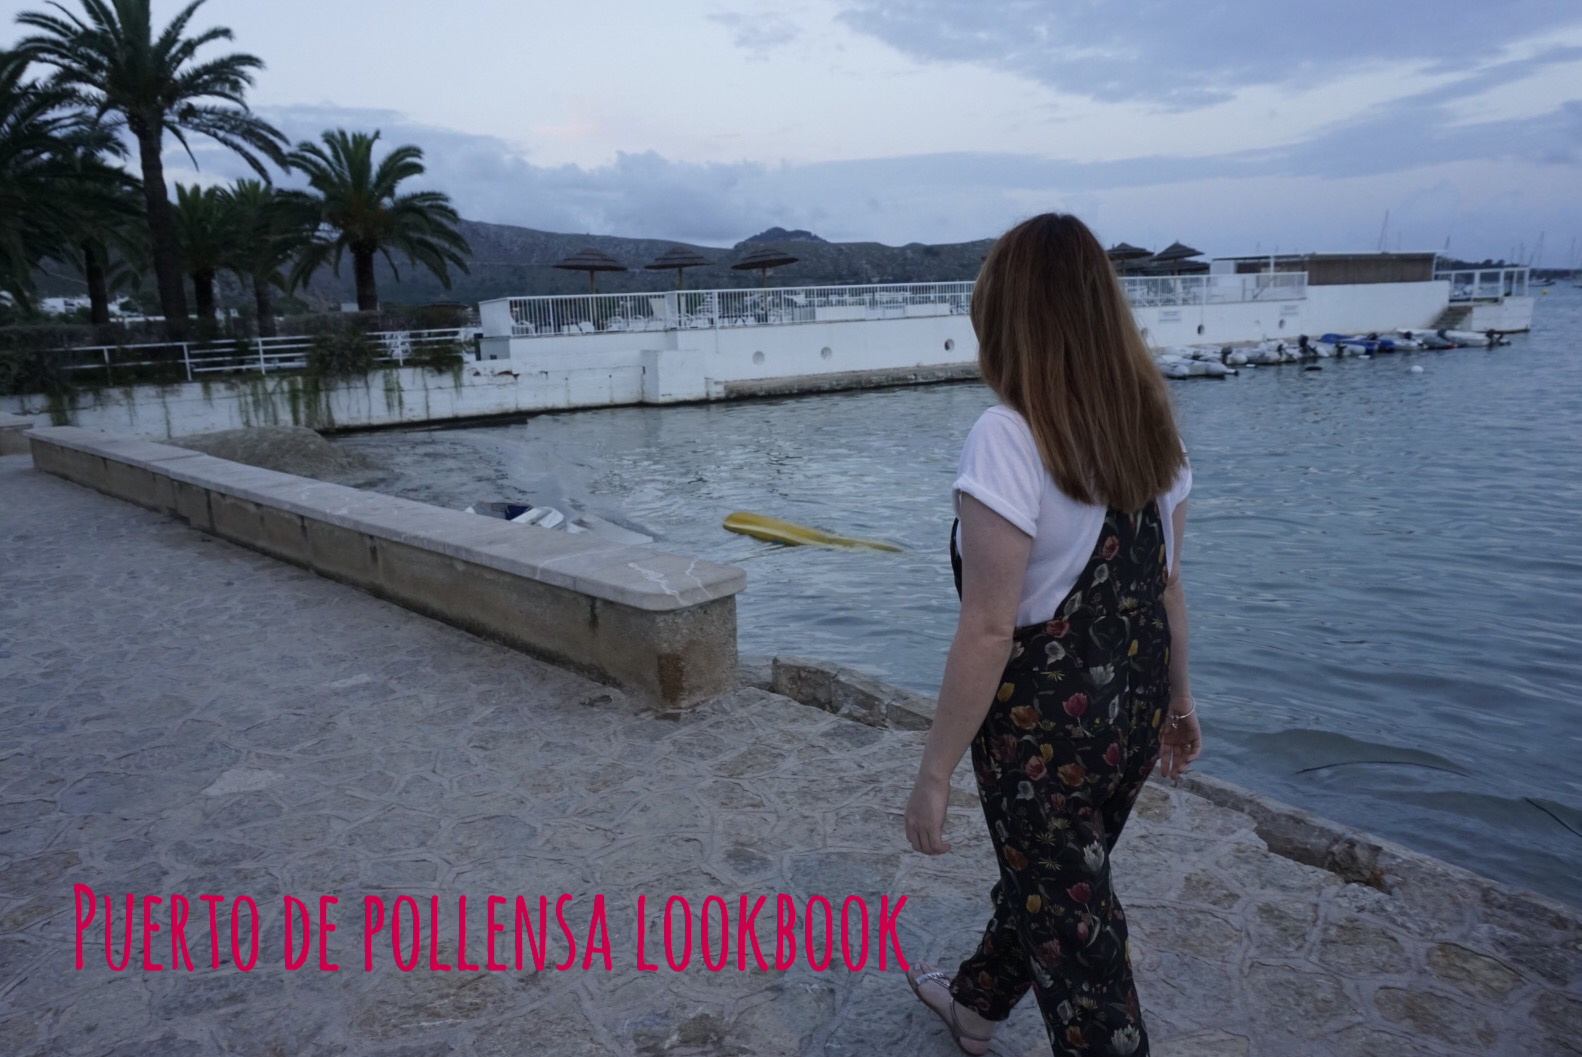 Puerto De Pollensa Lookbook graphic